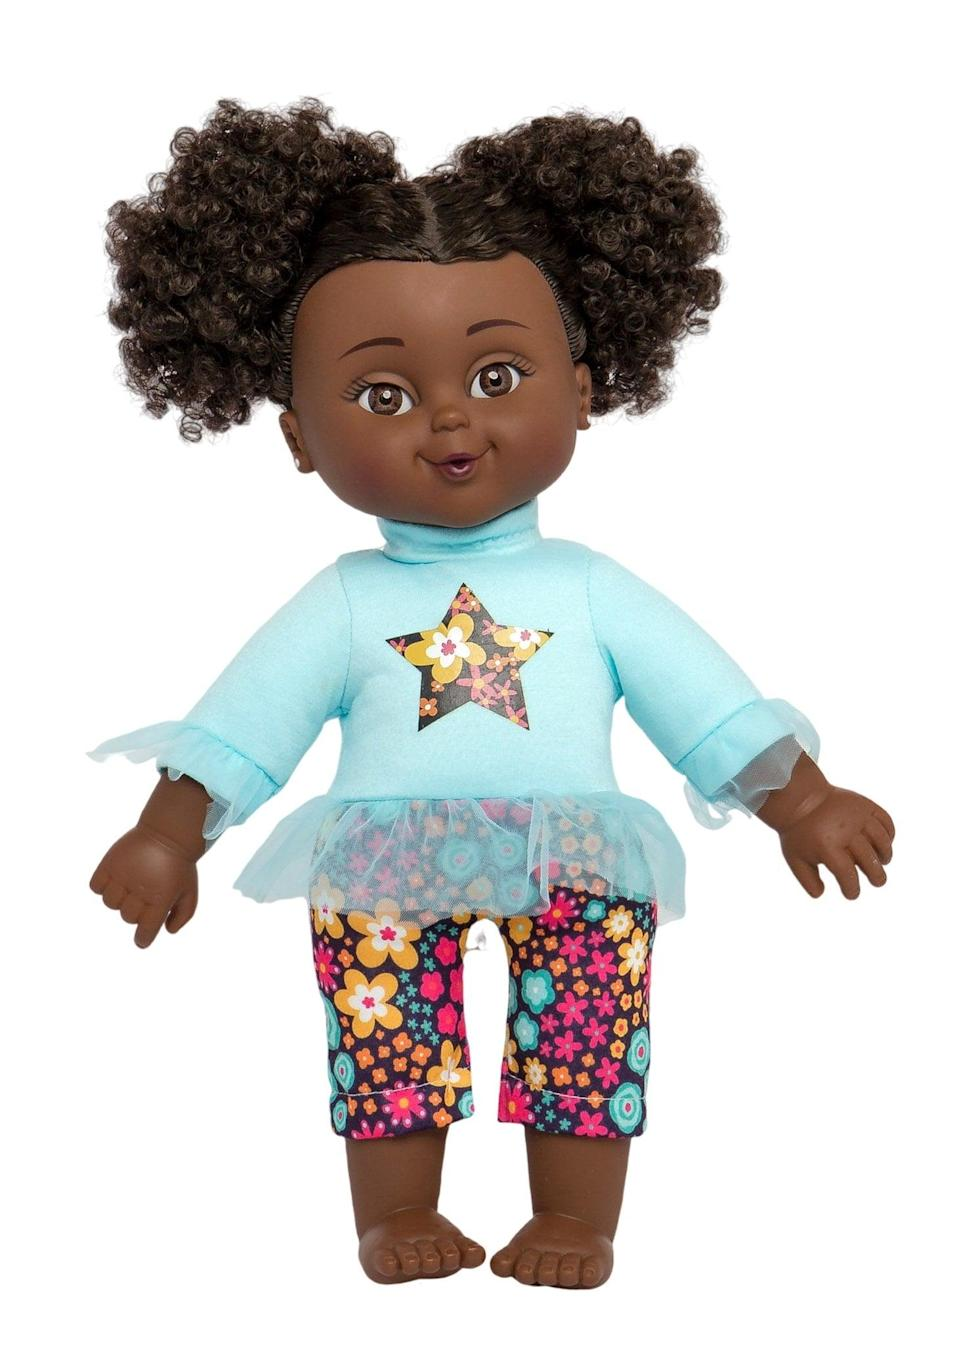 """<p>With a soft body, the <a href=""""https://www.popsugar.com/buy/Positively-Perfect-Curly-Afro-Puffs-Baby-Doll-579585?p_name=Positively%20Perfect%20Curly%20Afro%20Puffs%20Baby%20Doll&retailer=thefreshdolls.com&pid=579585&price=26&evar1=moms%3Aus&evar9=47528625&evar98=https%3A%2F%2Fwww.popsugar.com%2Ffamily%2Fphoto-gallery%2F47528625%2Fimage%2F47528646%2FPositively-Perfect-Curly-Afro-Puffs-Baby-Doll&list1=kid%20shopping&prop13=mobile&pdata=1"""" class=""""link rapid-noclick-resp"""" rel=""""nofollow noopener"""" target=""""_blank"""" data-ylk=""""slk:Positively Perfect Curly Afro Puffs Baby Doll"""">Positively Perfect Curly Afro Puffs Baby Doll</a> ($26) is the perfect companion for bedtime. </p>"""